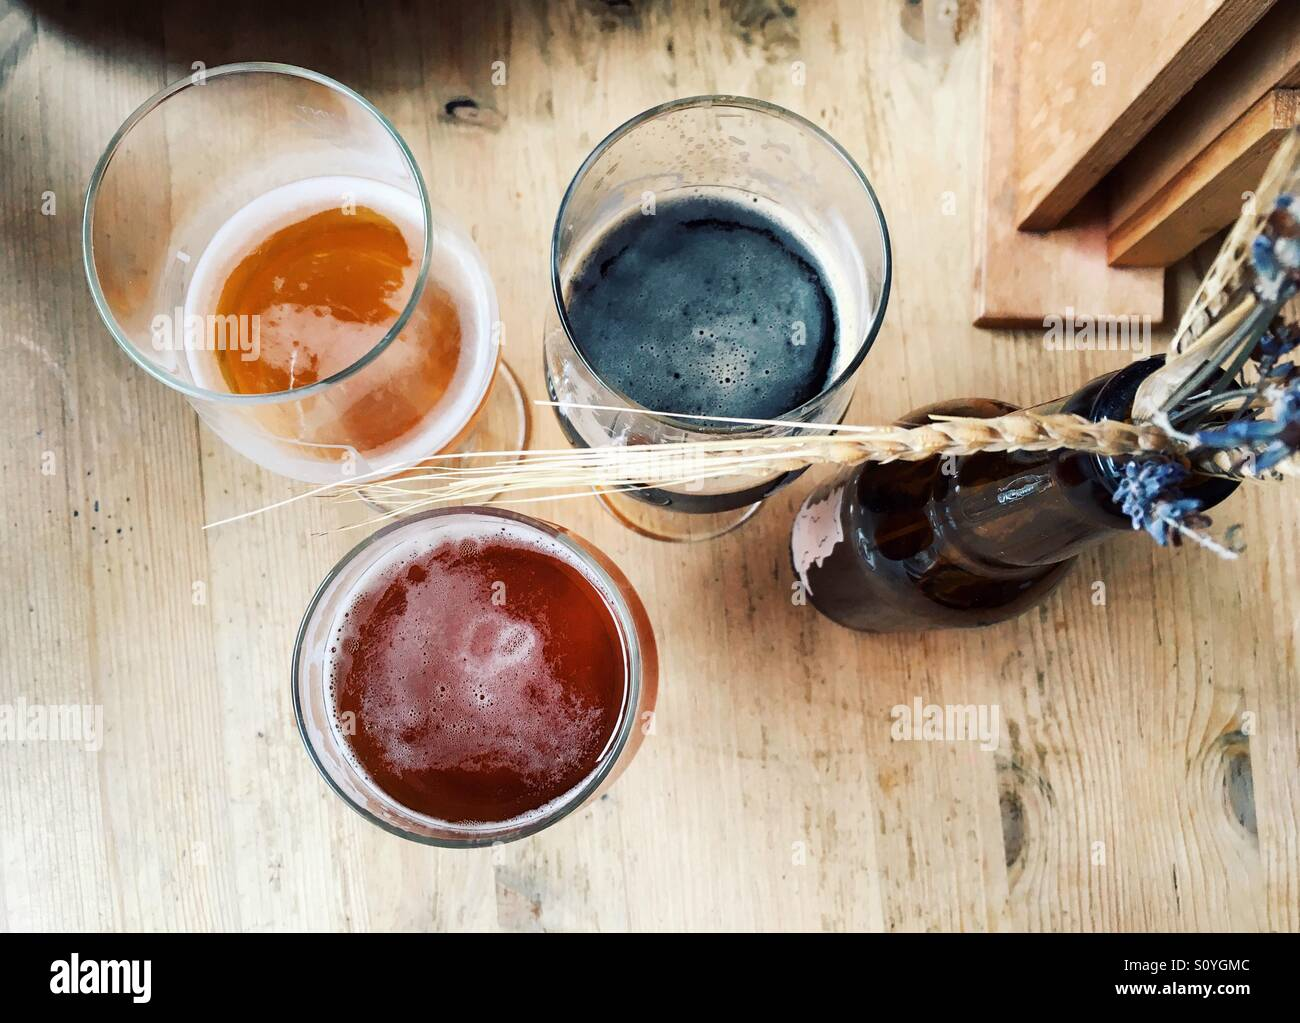 View from above of 3 different types of craft beer on a wooden table with decorative dried wheat and flowers on - Stock Image